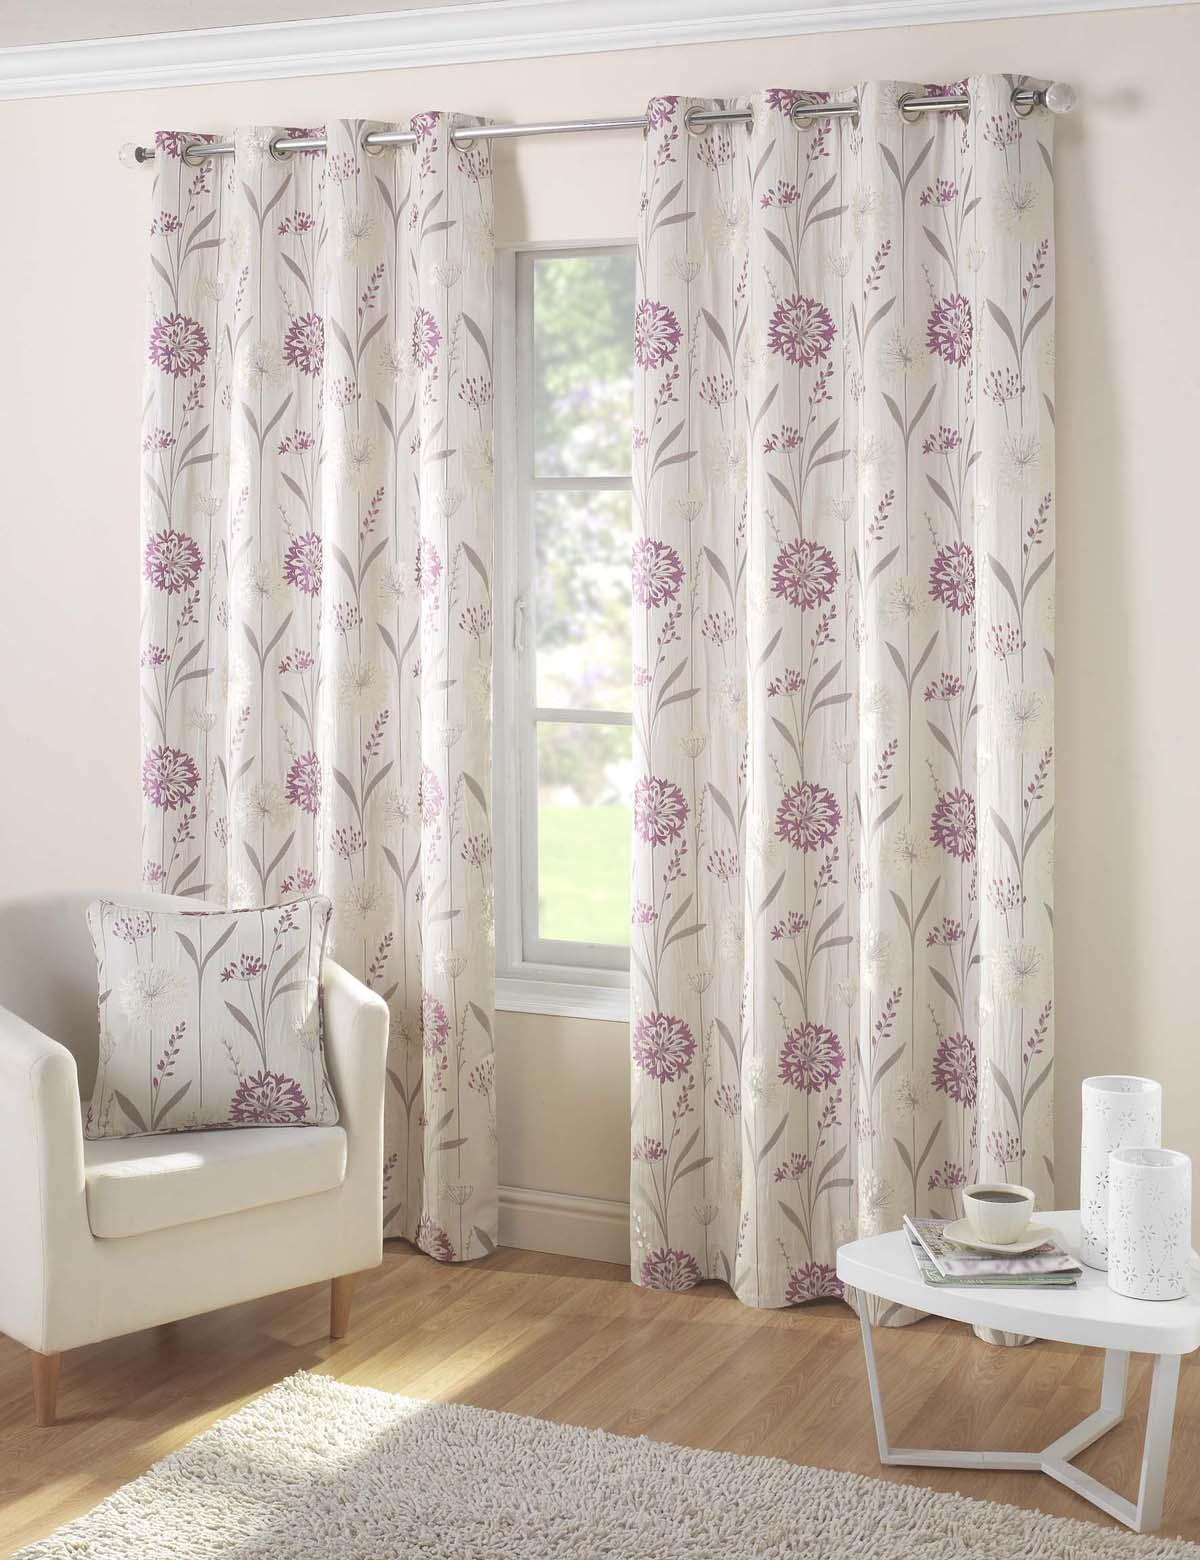 Santorini Eyelet Curtains In Lilac Free UK Delivery